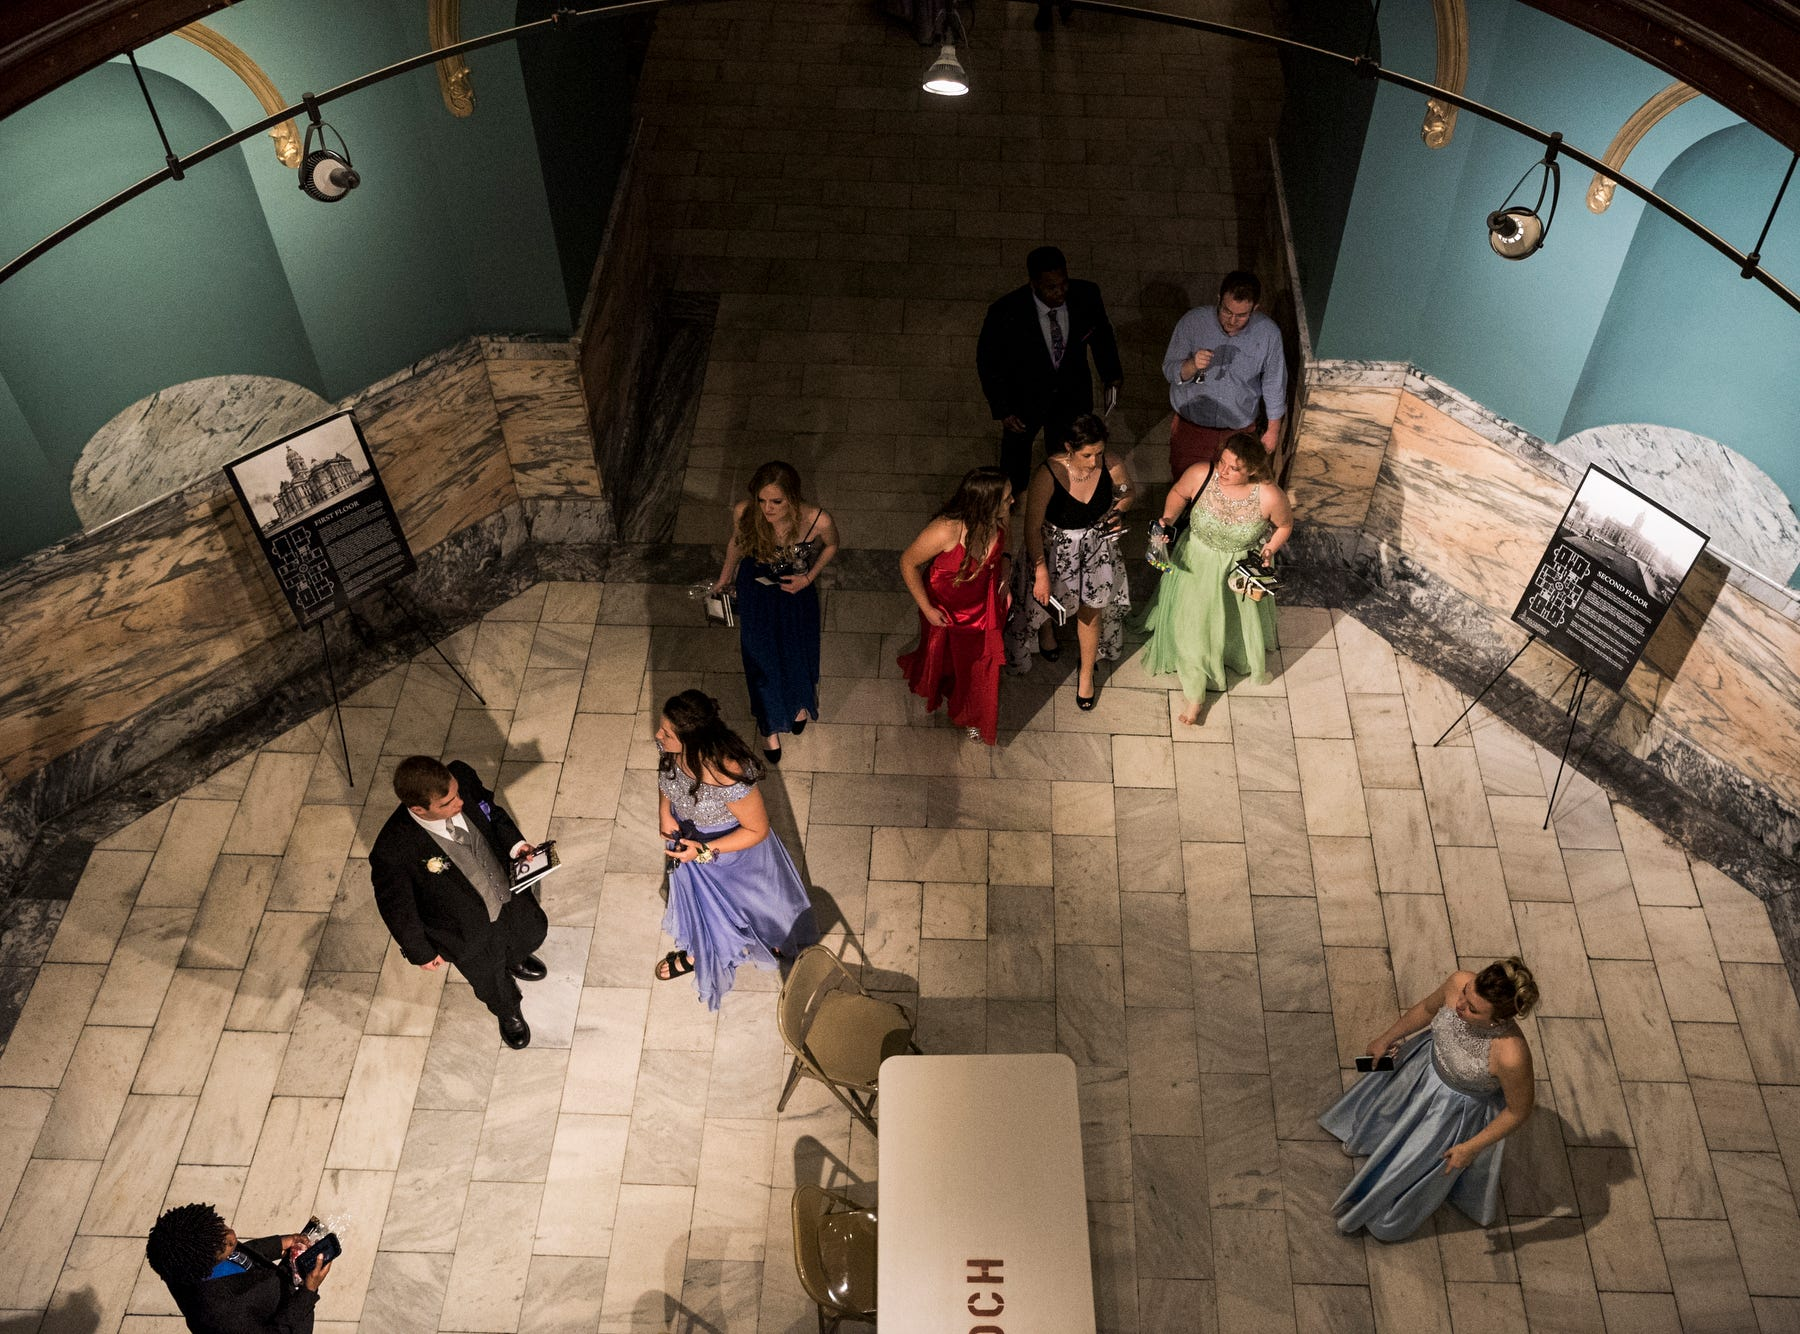 Bosse High School students leave the Old Vanderburgh County Courthouse after a night full of dancing at their prom in downtown Evansville, Ind., Saturday, April 6, 2019.